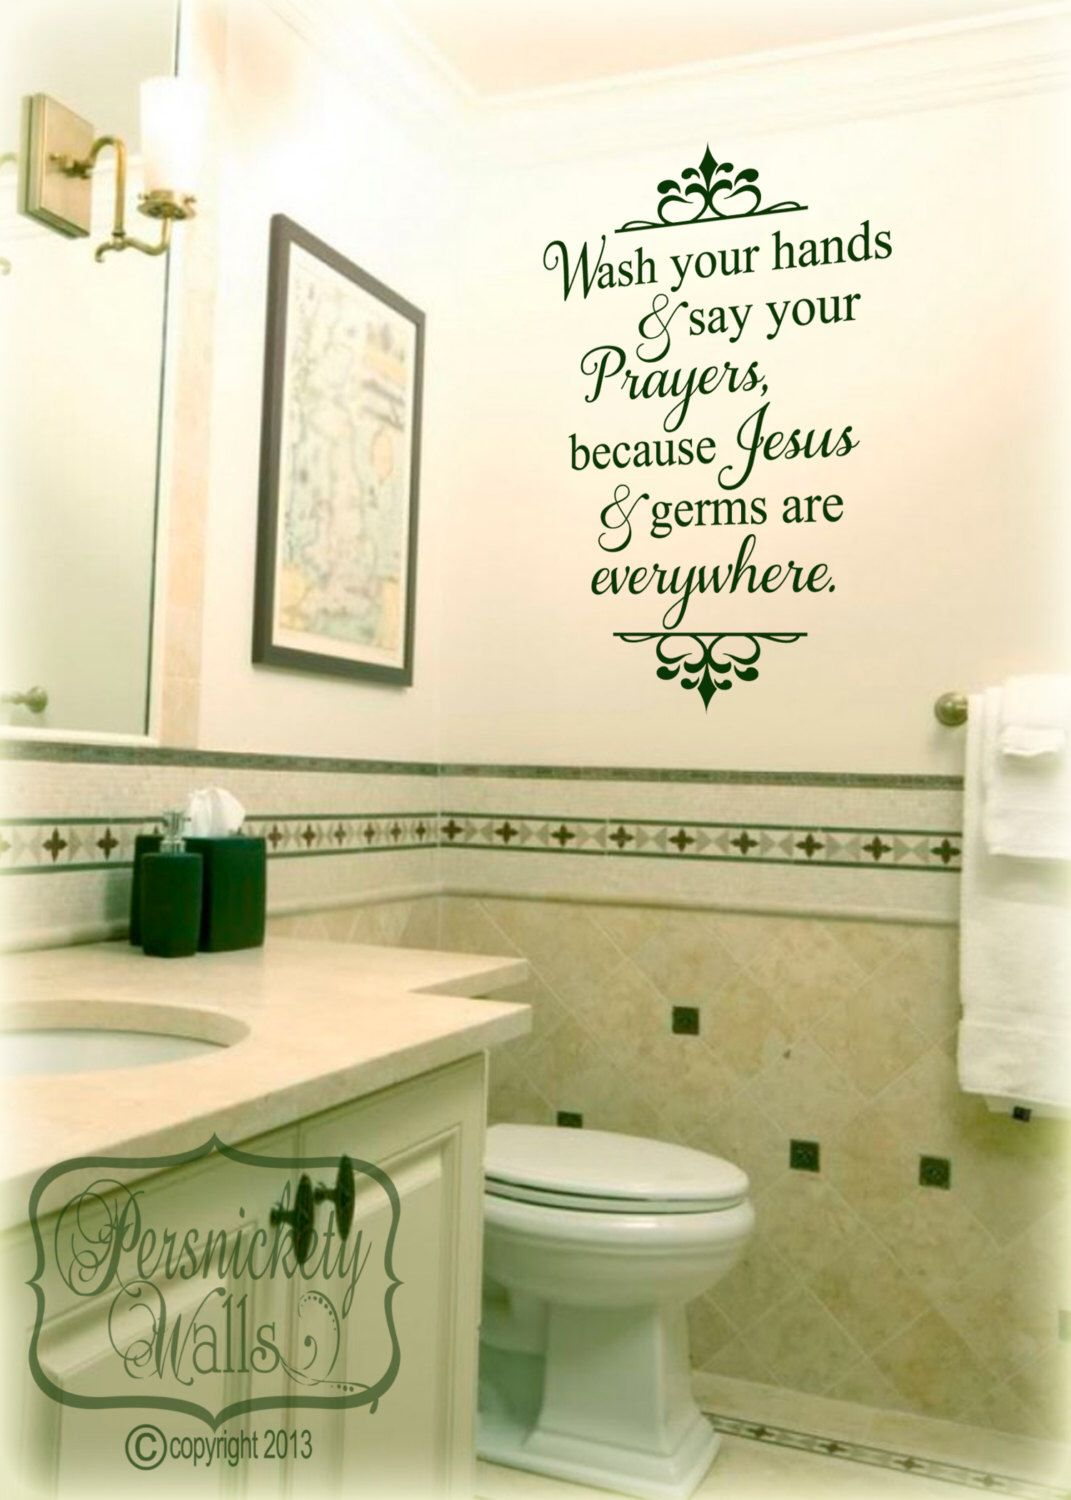 Wash your hands and say your prayers, because Jesus and germs are ...